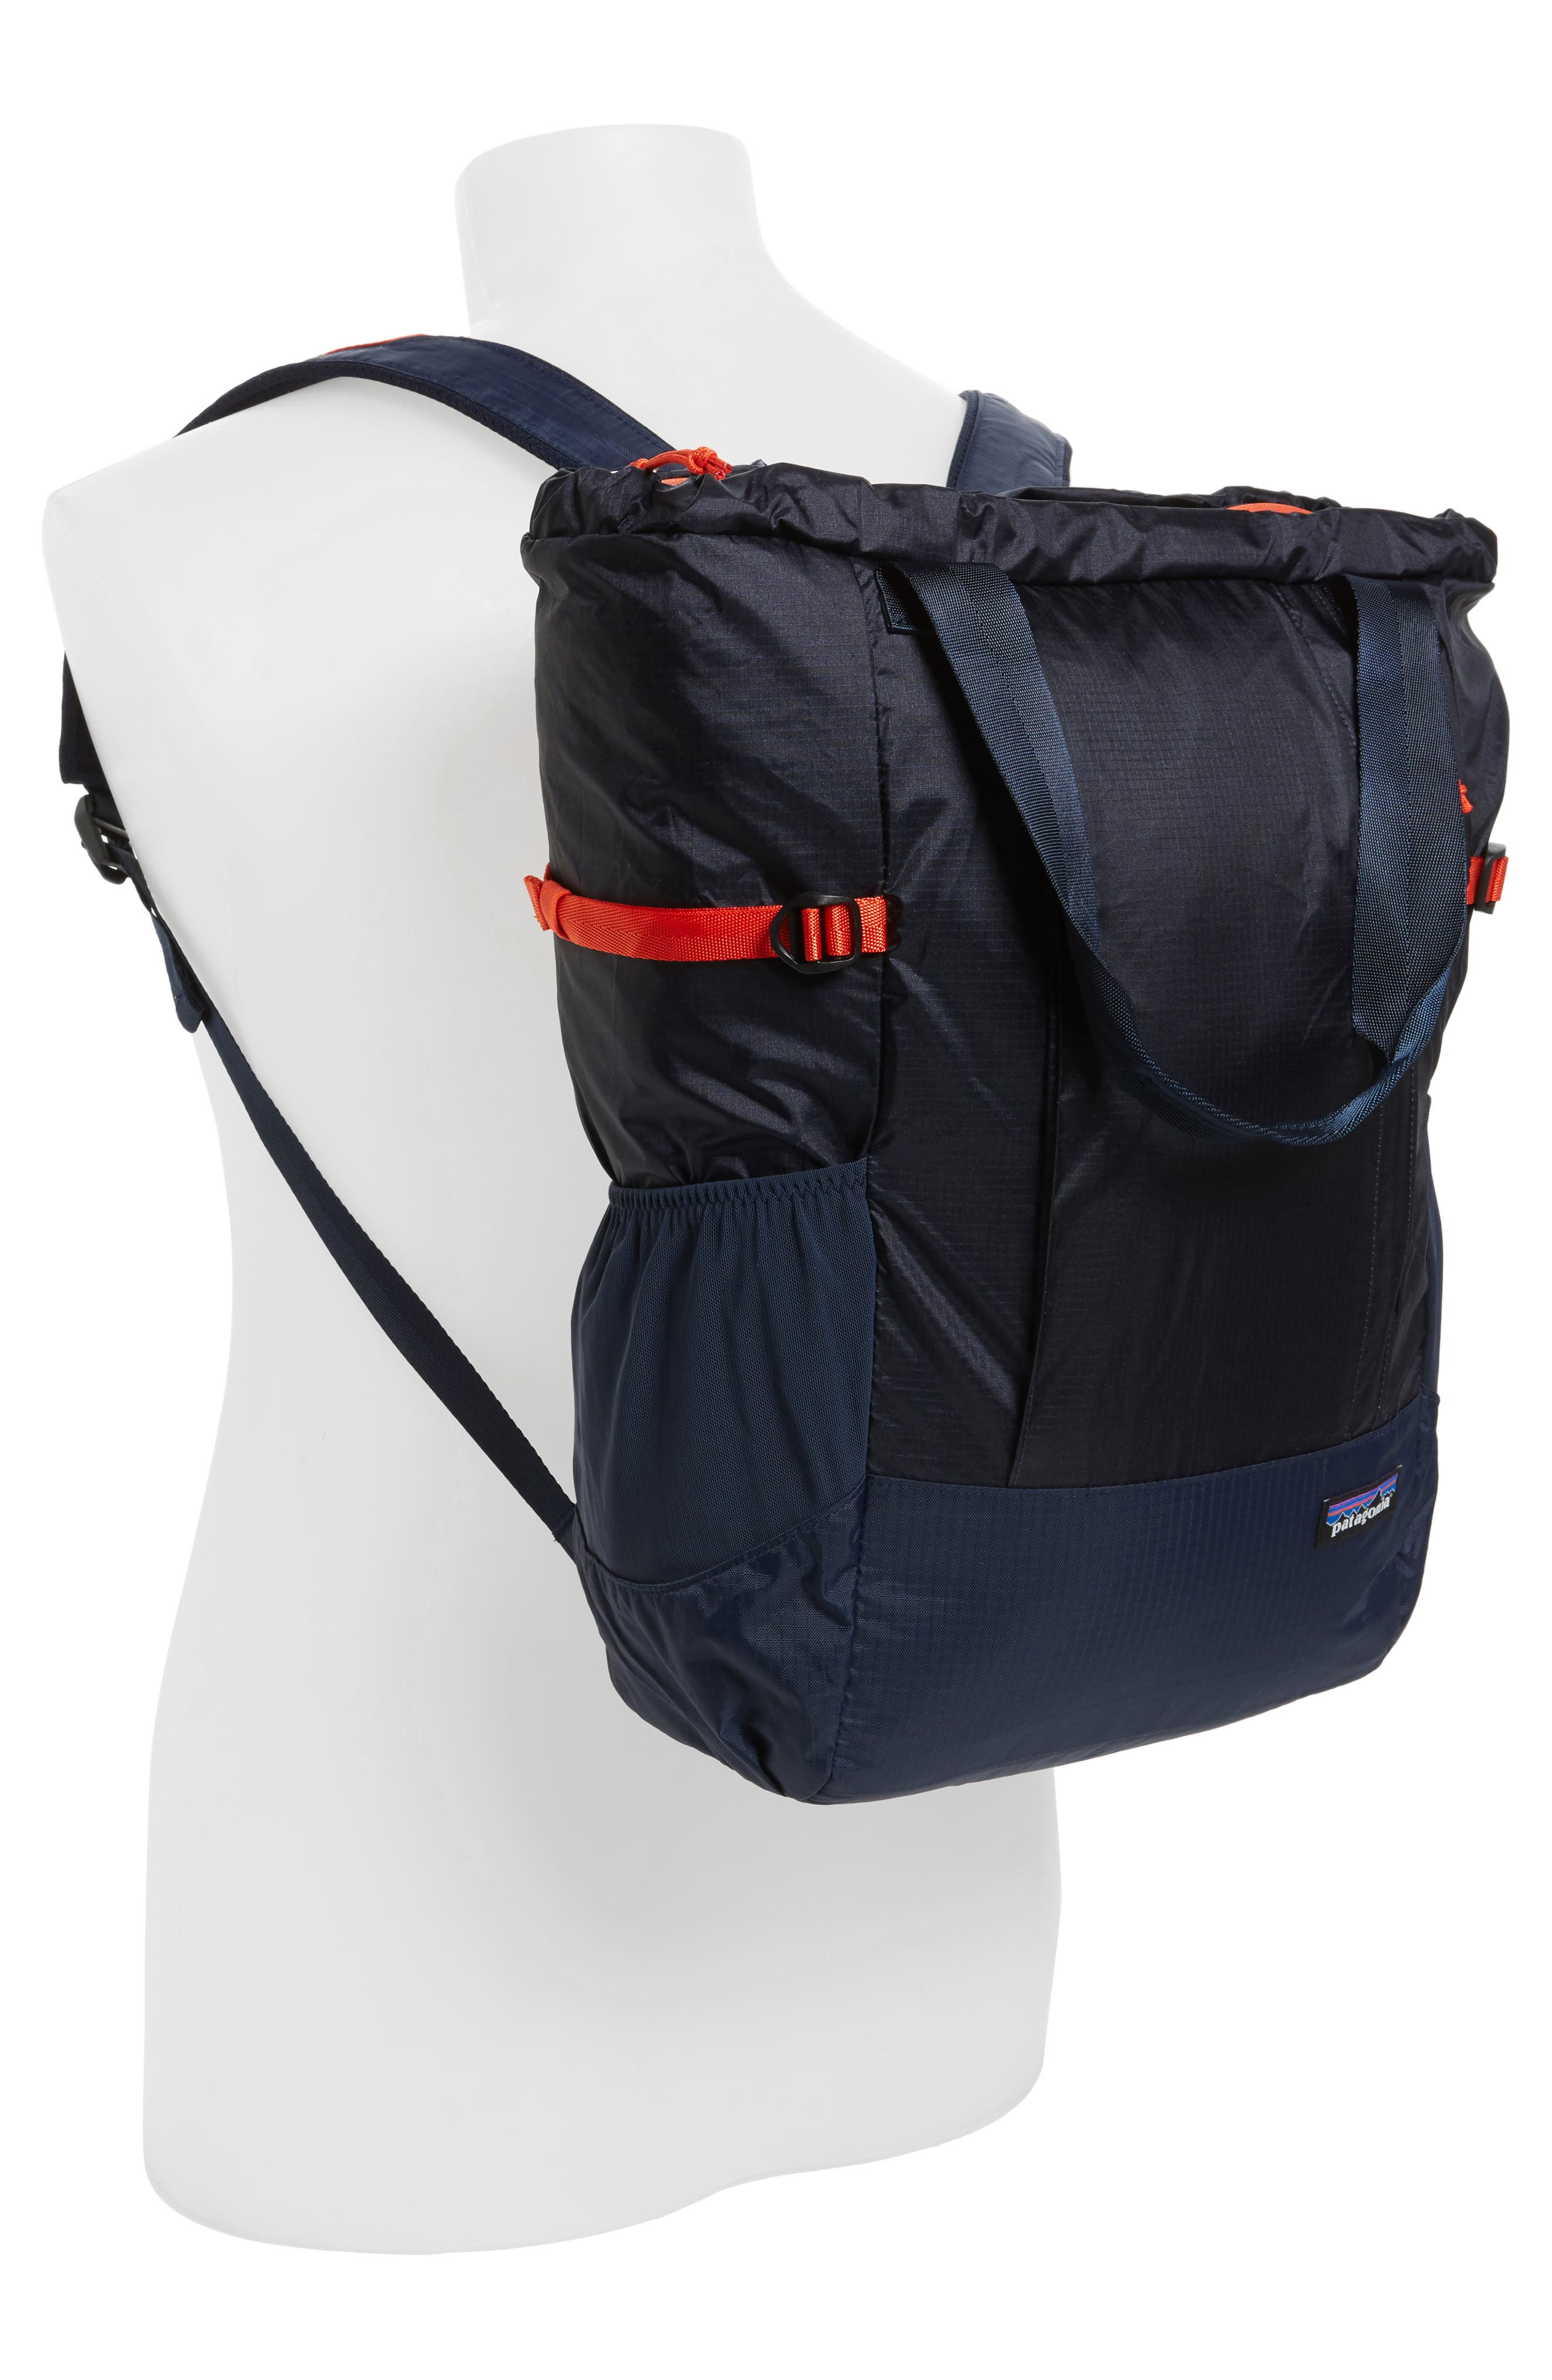 Lightweight Travel Tote Pack,                             Alternate thumbnail 2, color,                             403